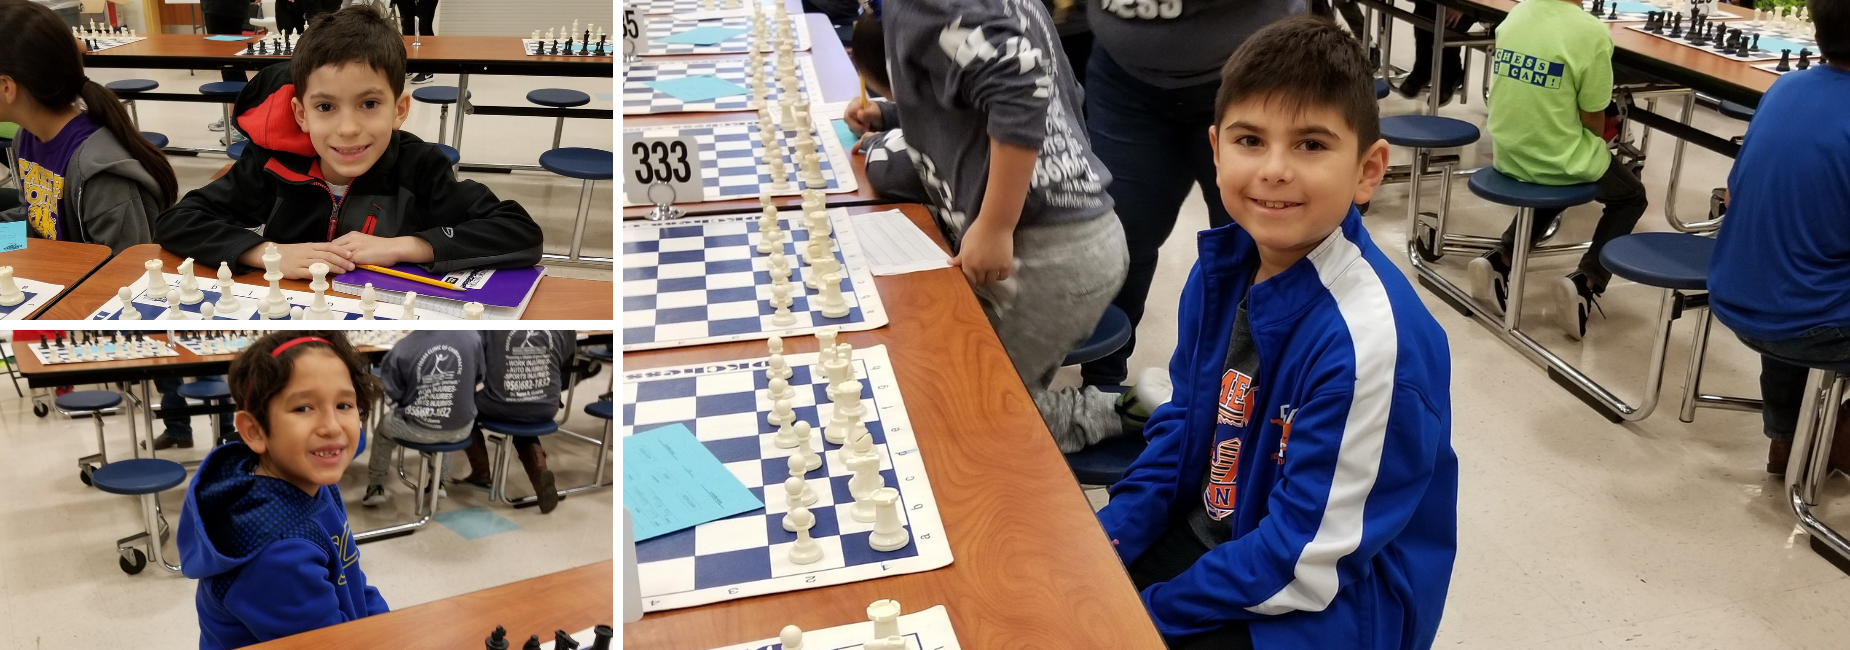 Chess players at tournament